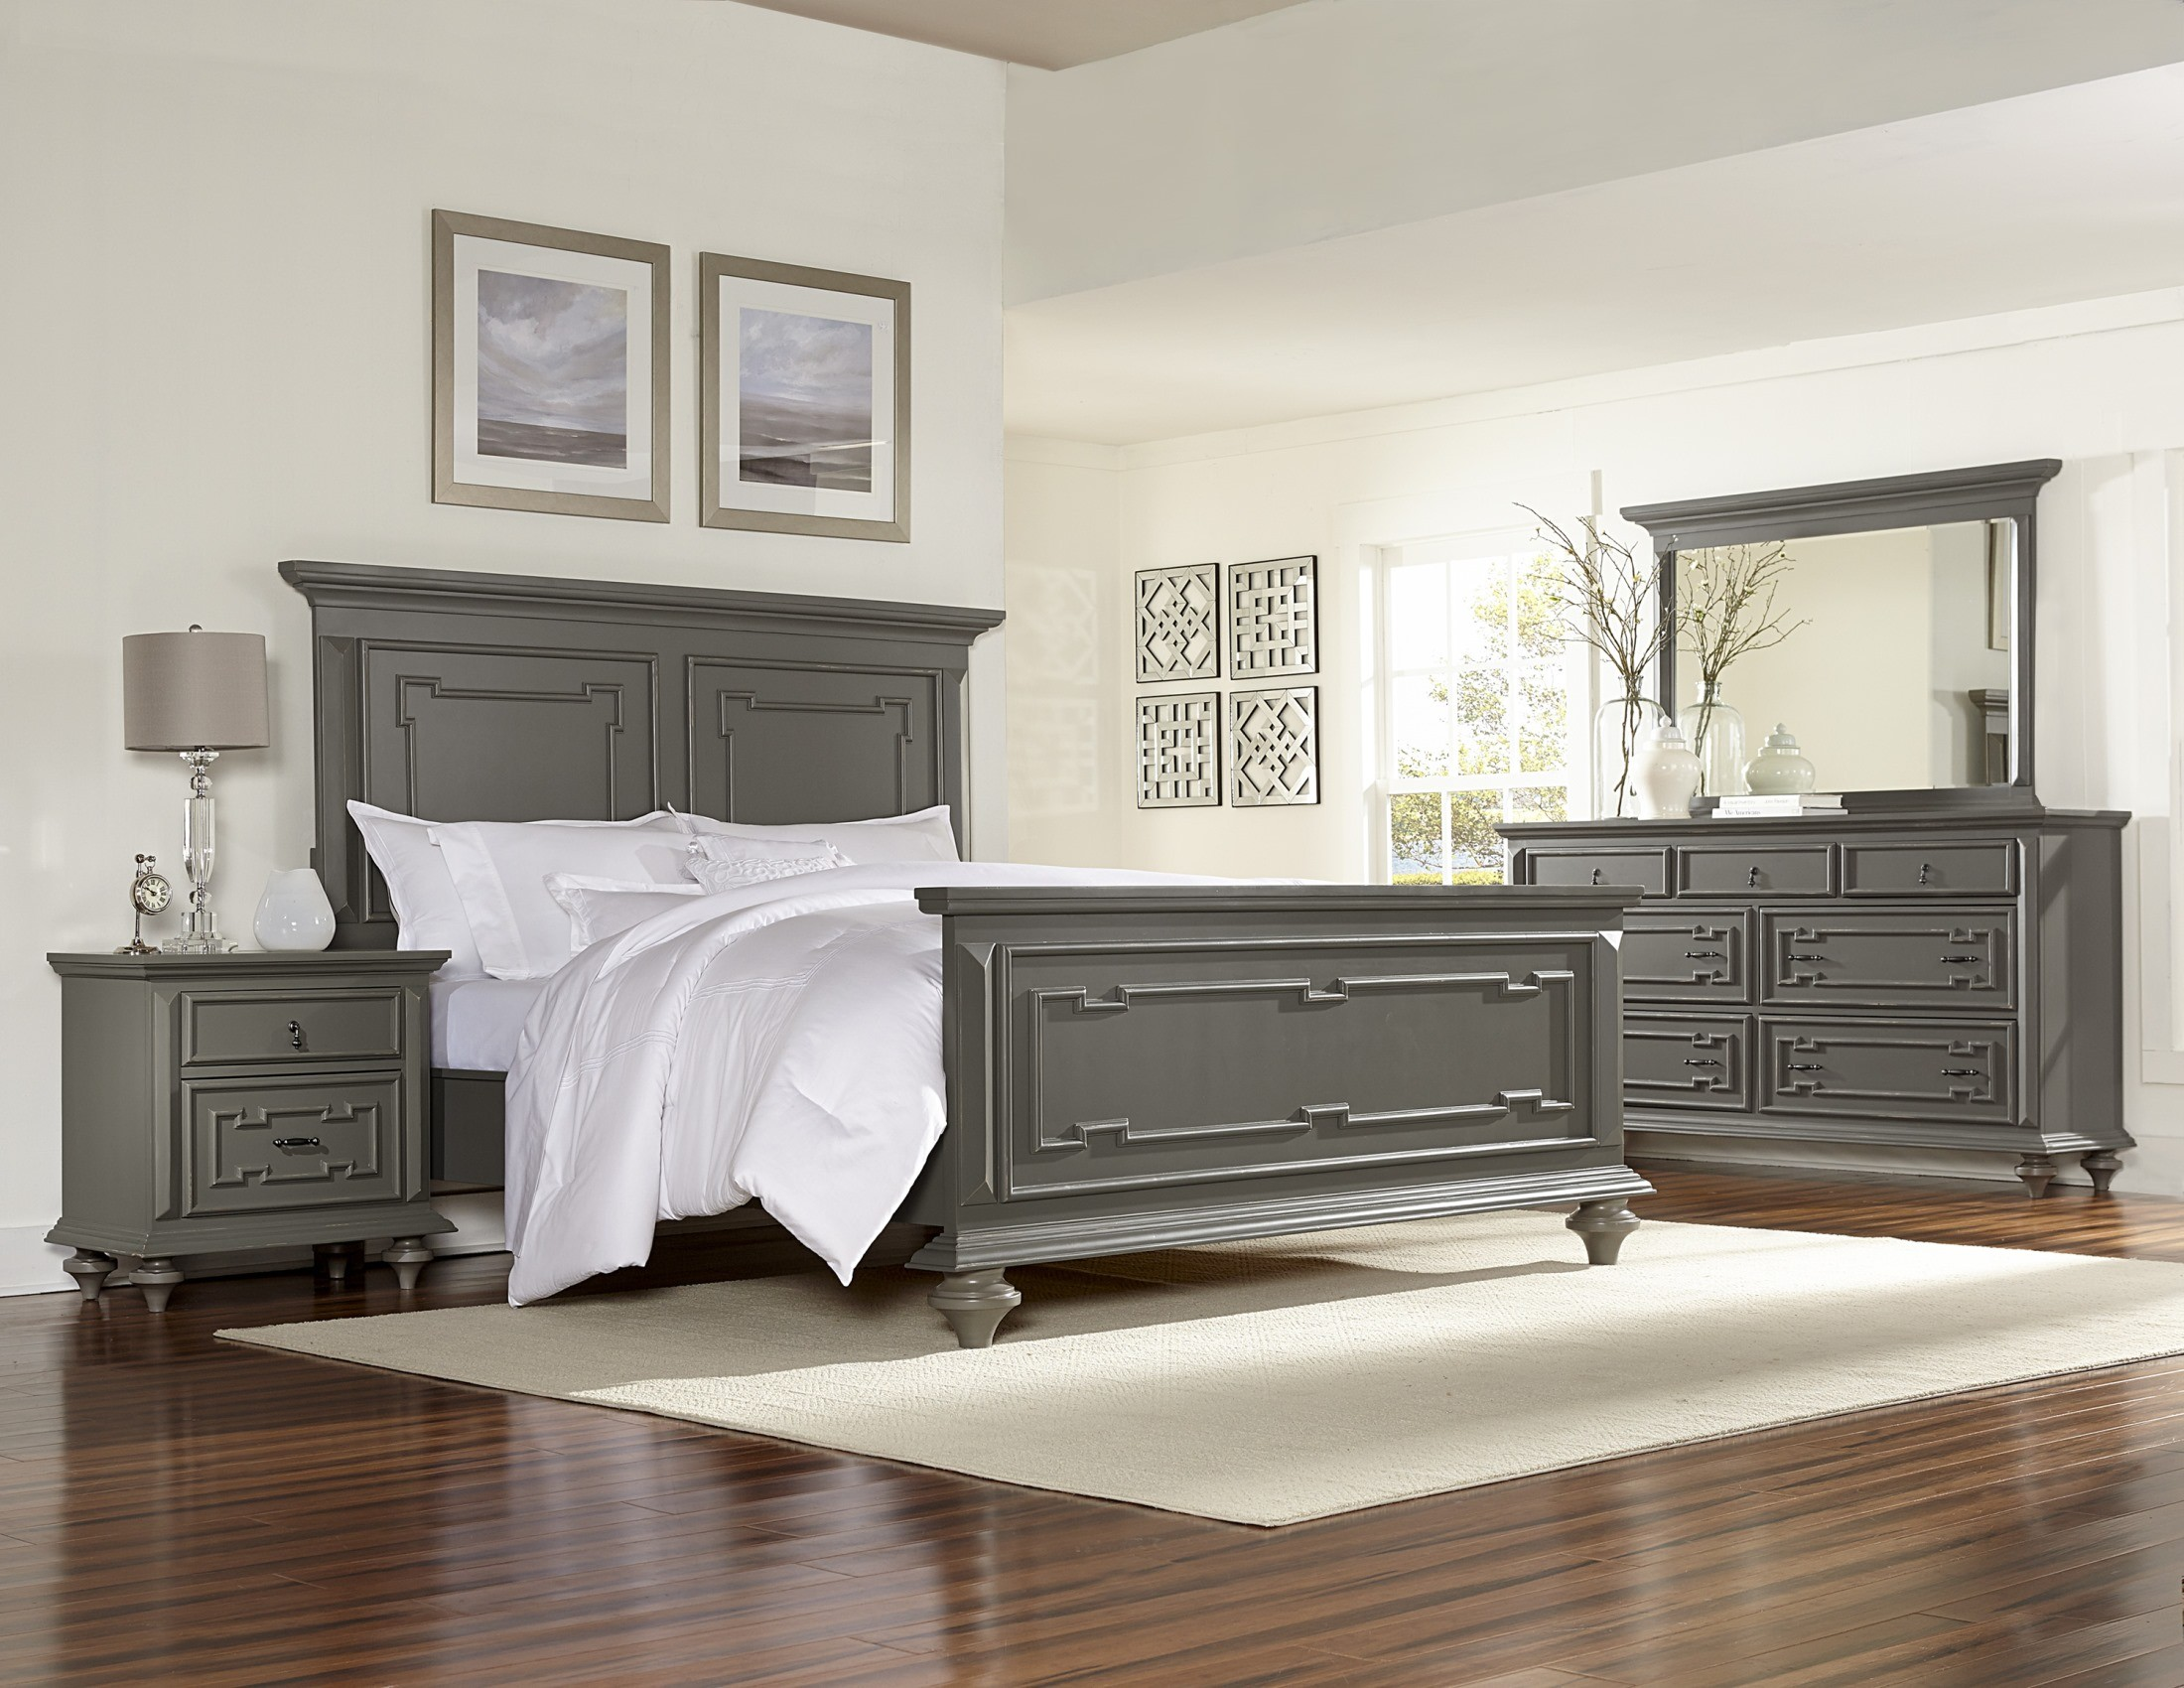 yhf signature bedroom rotmans set and sawyer item by ashley providence new ma storage design worcester room group collections boston england bed ri queen